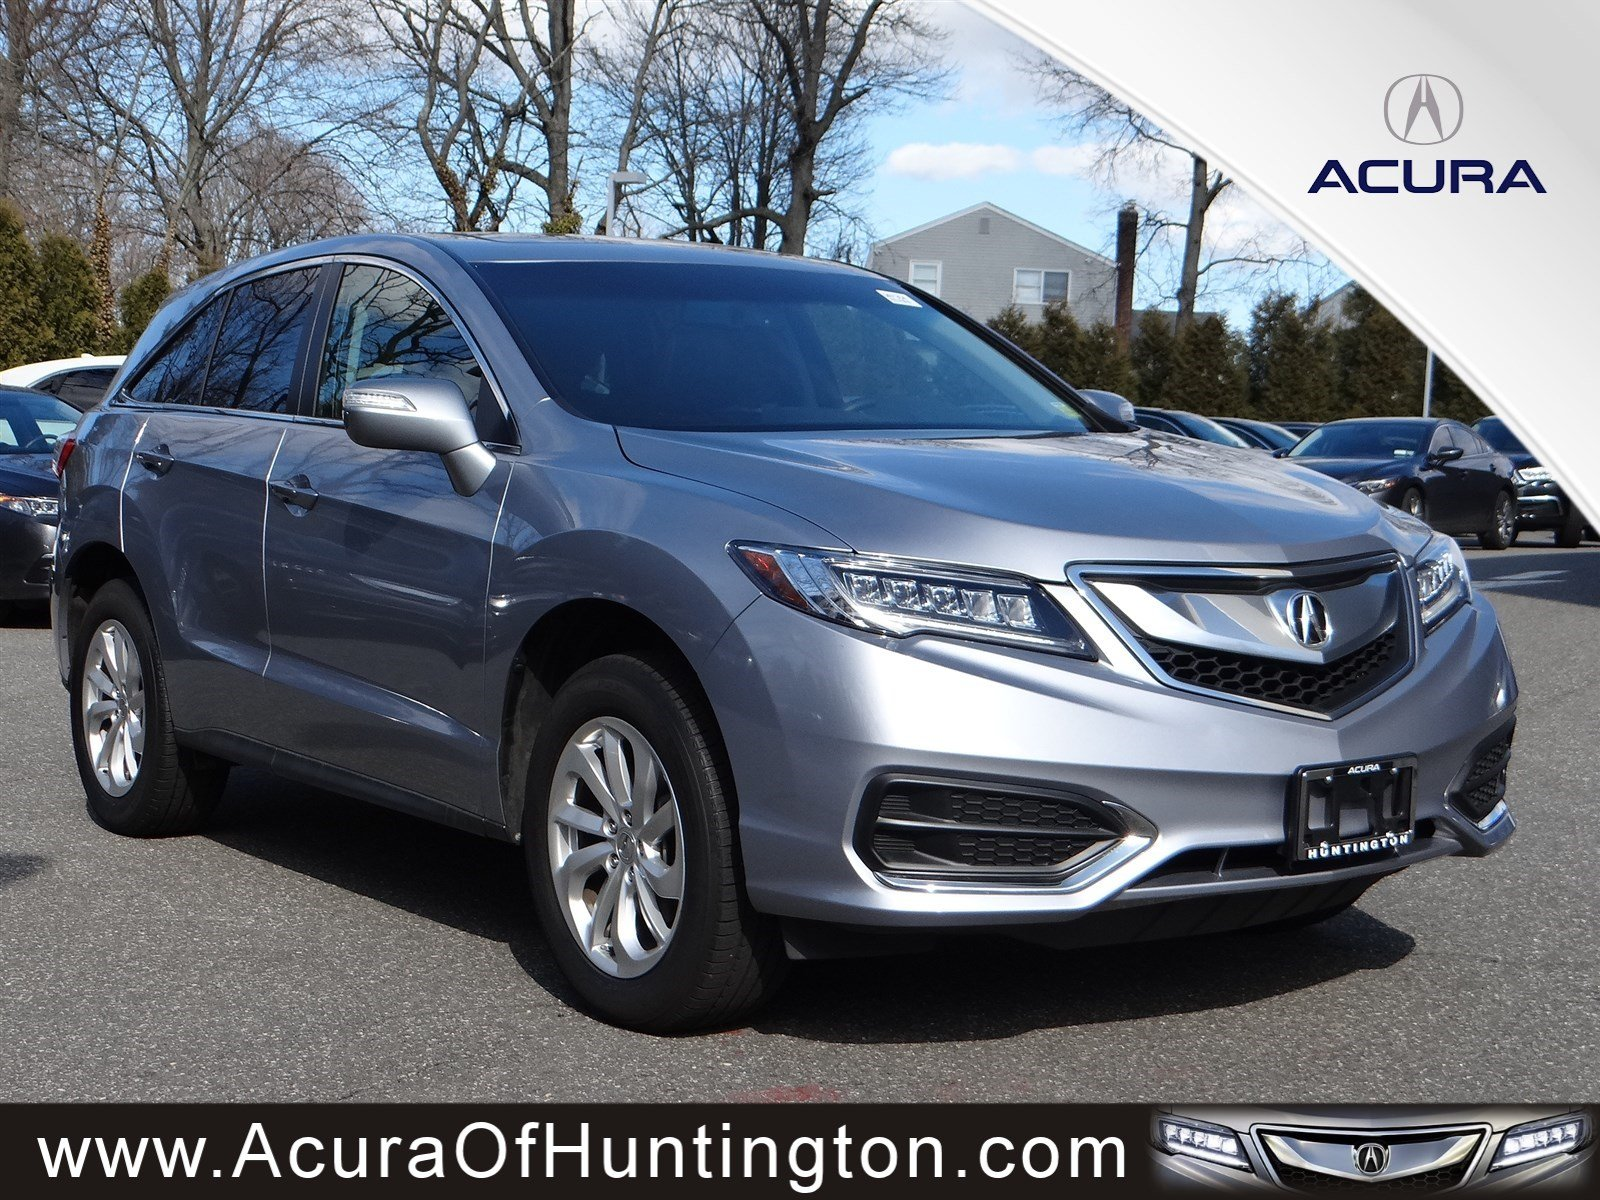 Pre Owned 2016 Acura RDX Sport Utility in Huntington UA7304